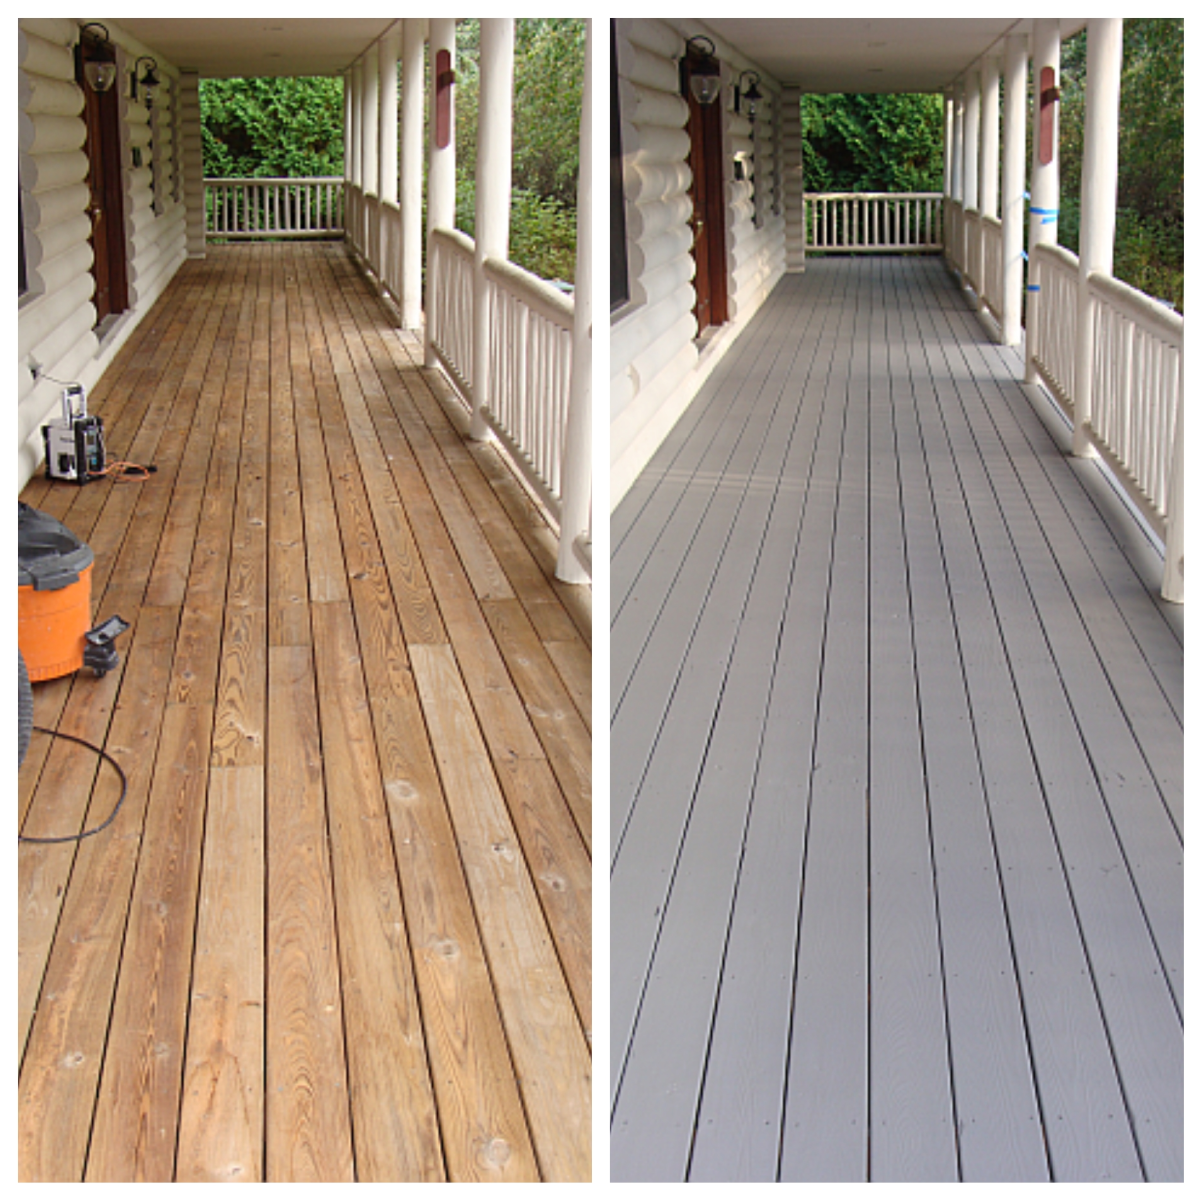 Tips for Painting a Porch Floor